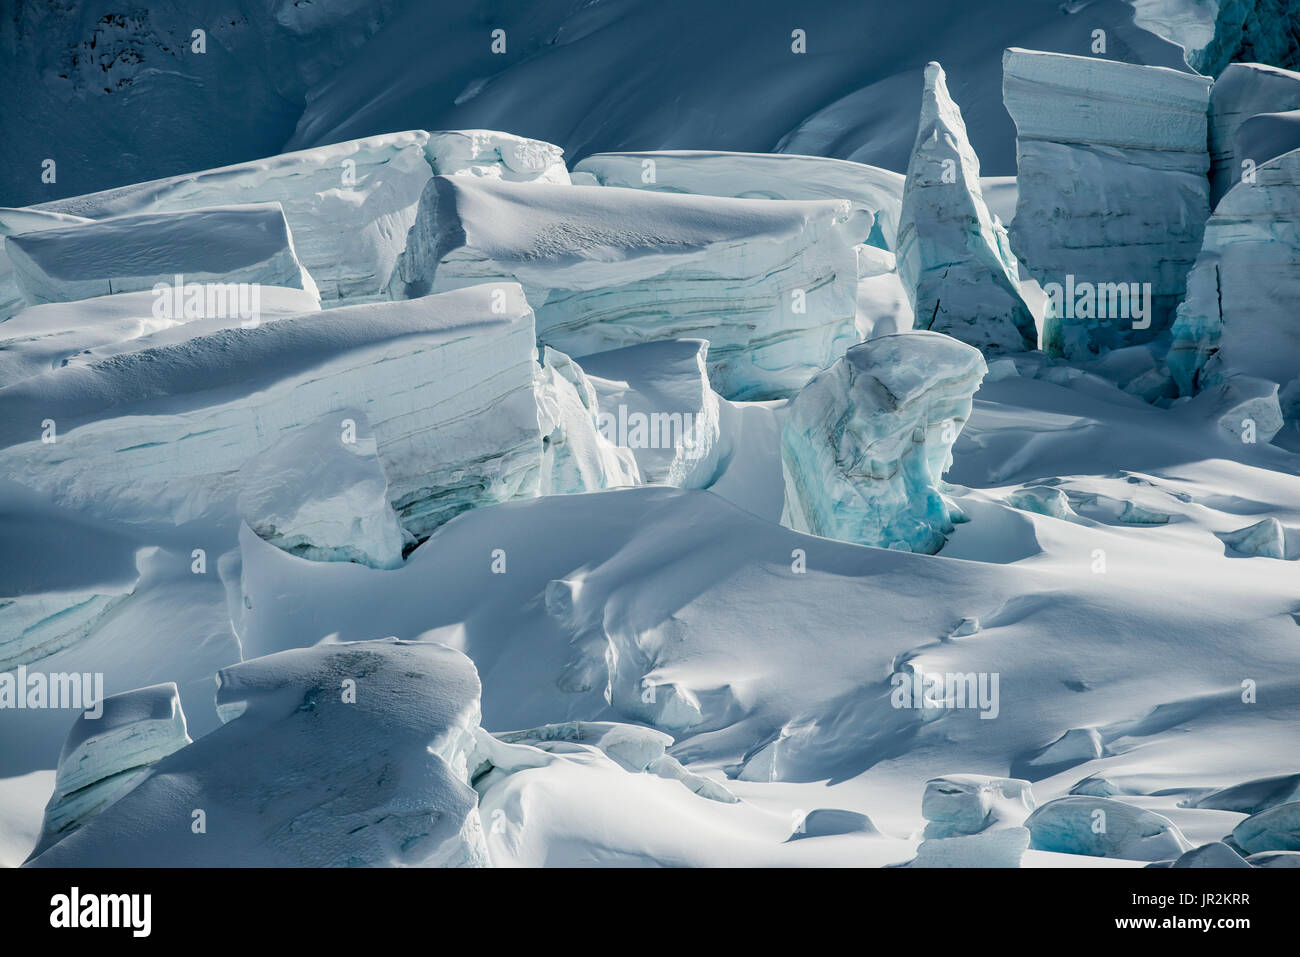 Detail View Of The Moore Icefall In The Delta Mountains Of The Alaska Range, Interior Alaska, USA - Stock Image